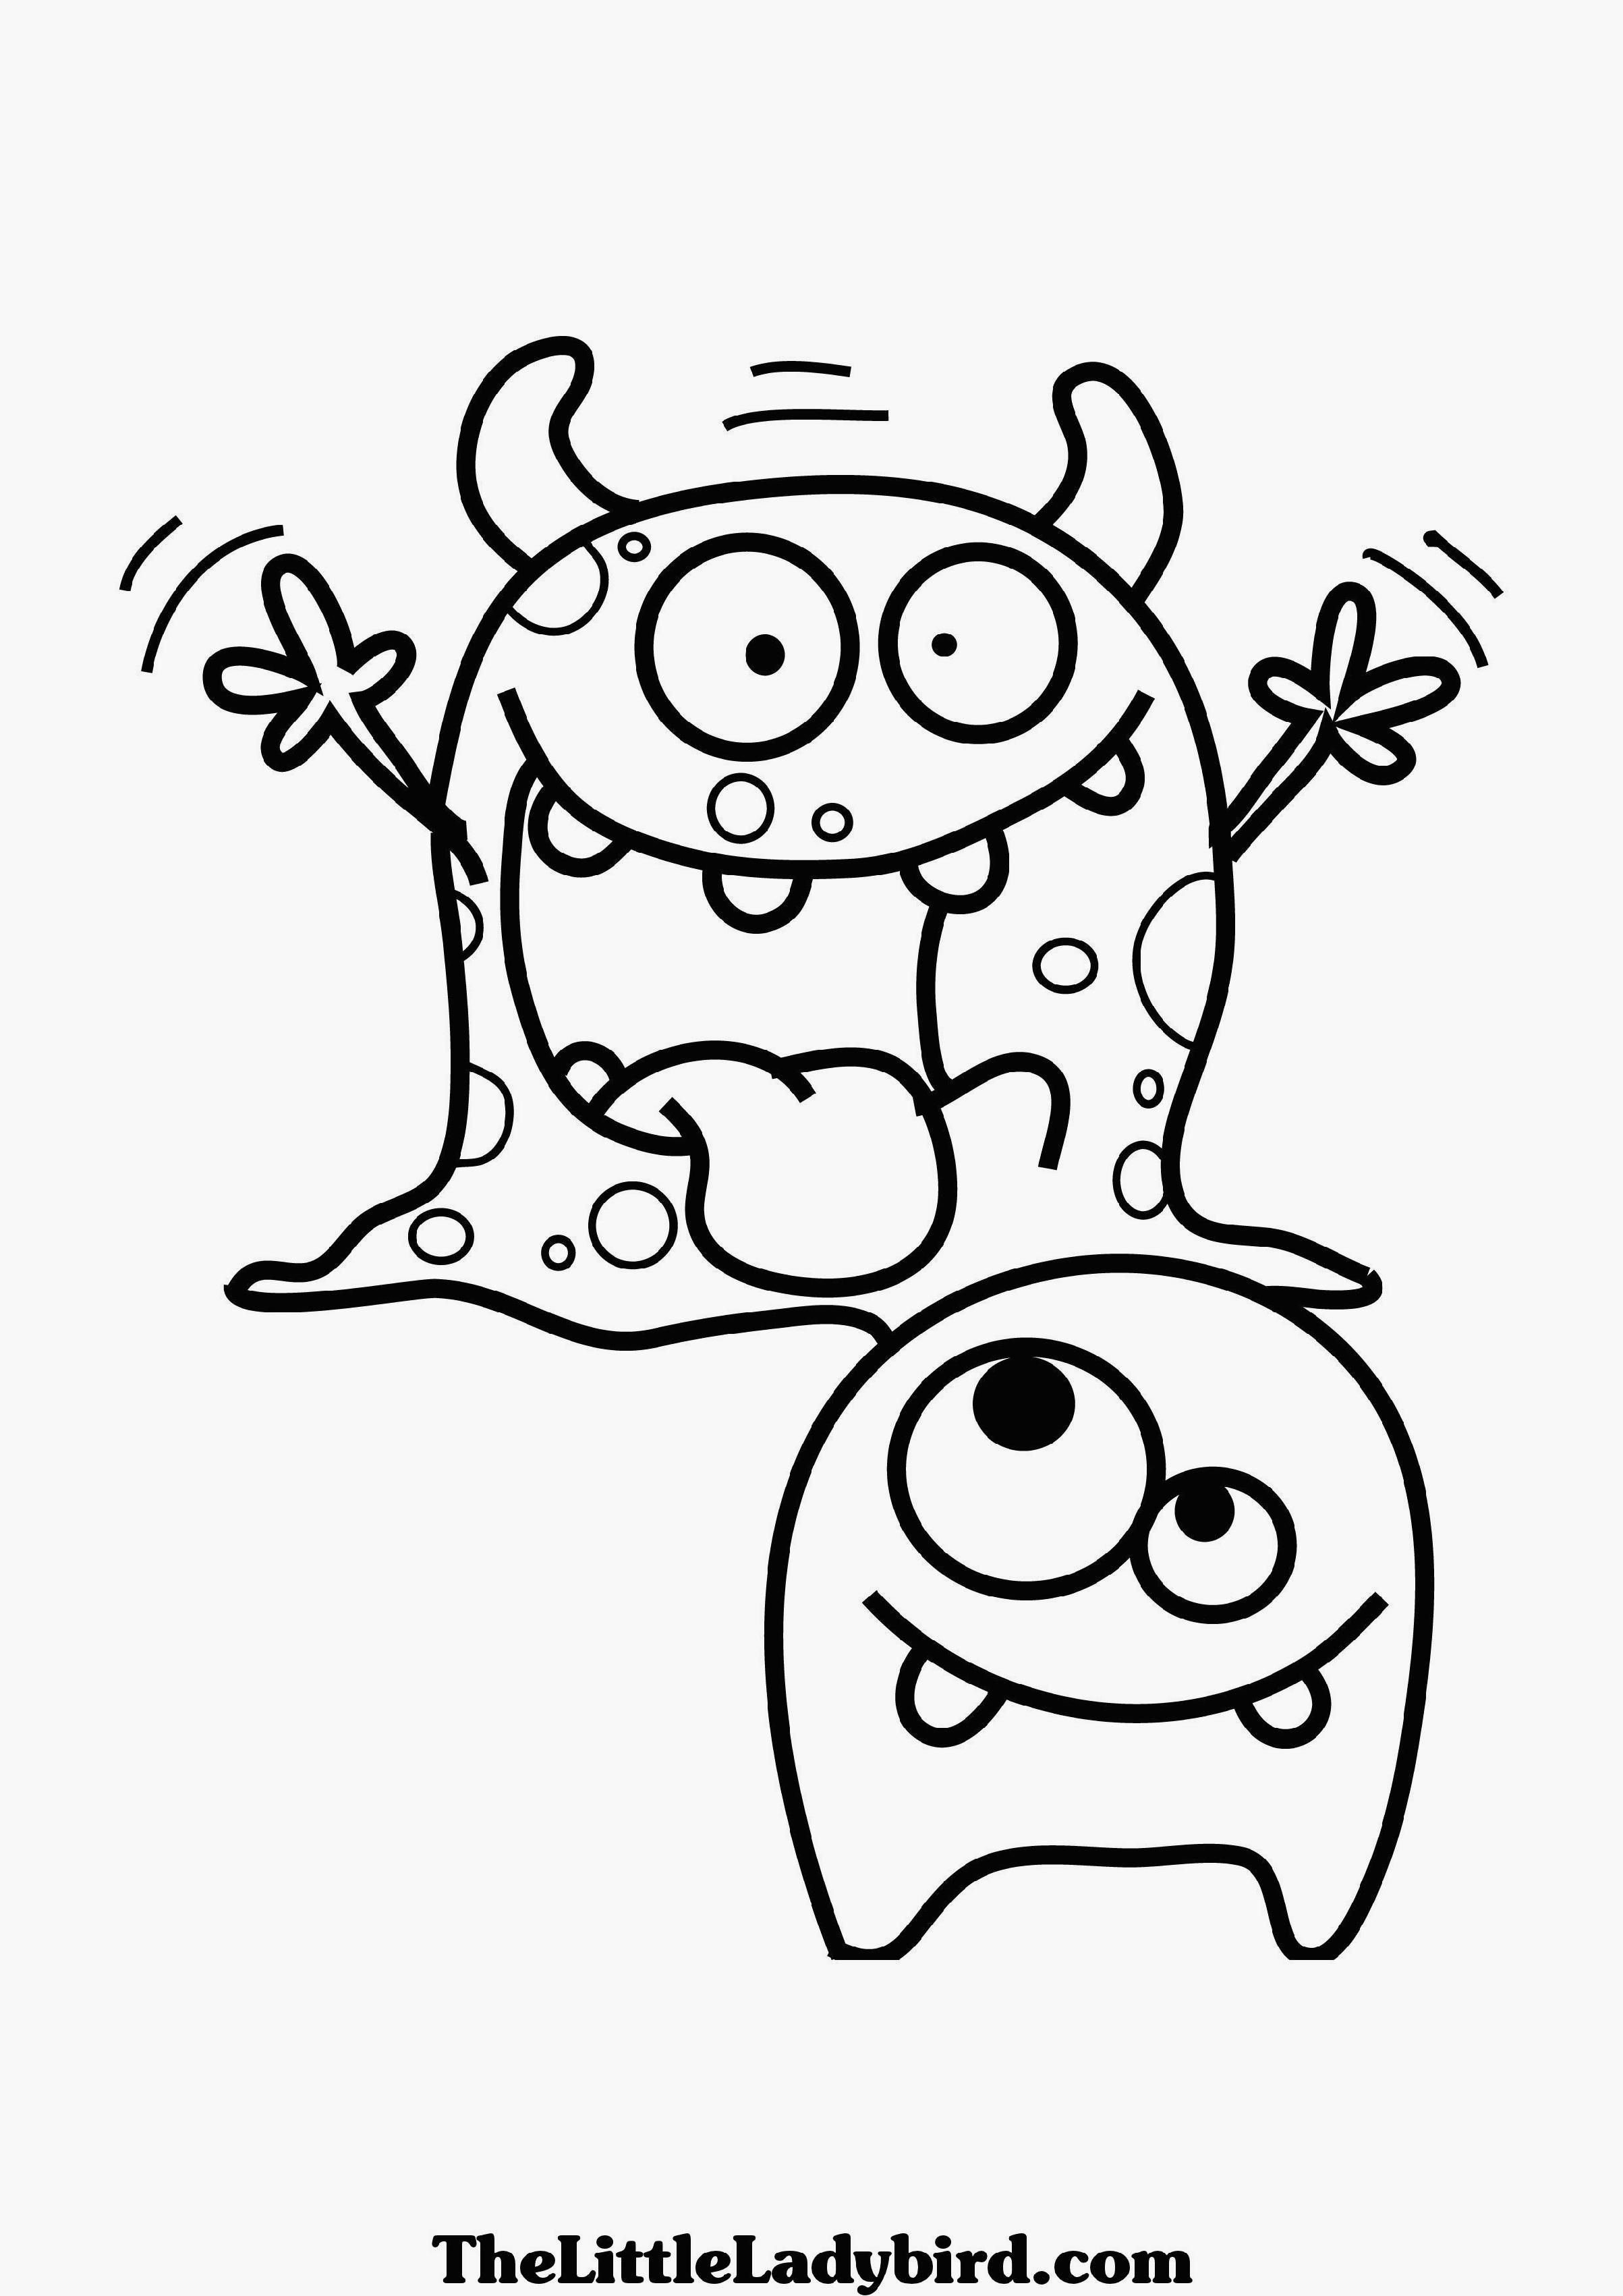 2406x3403 Monster Coloring Pages Faba Monster Coloring Page Cute Coloring